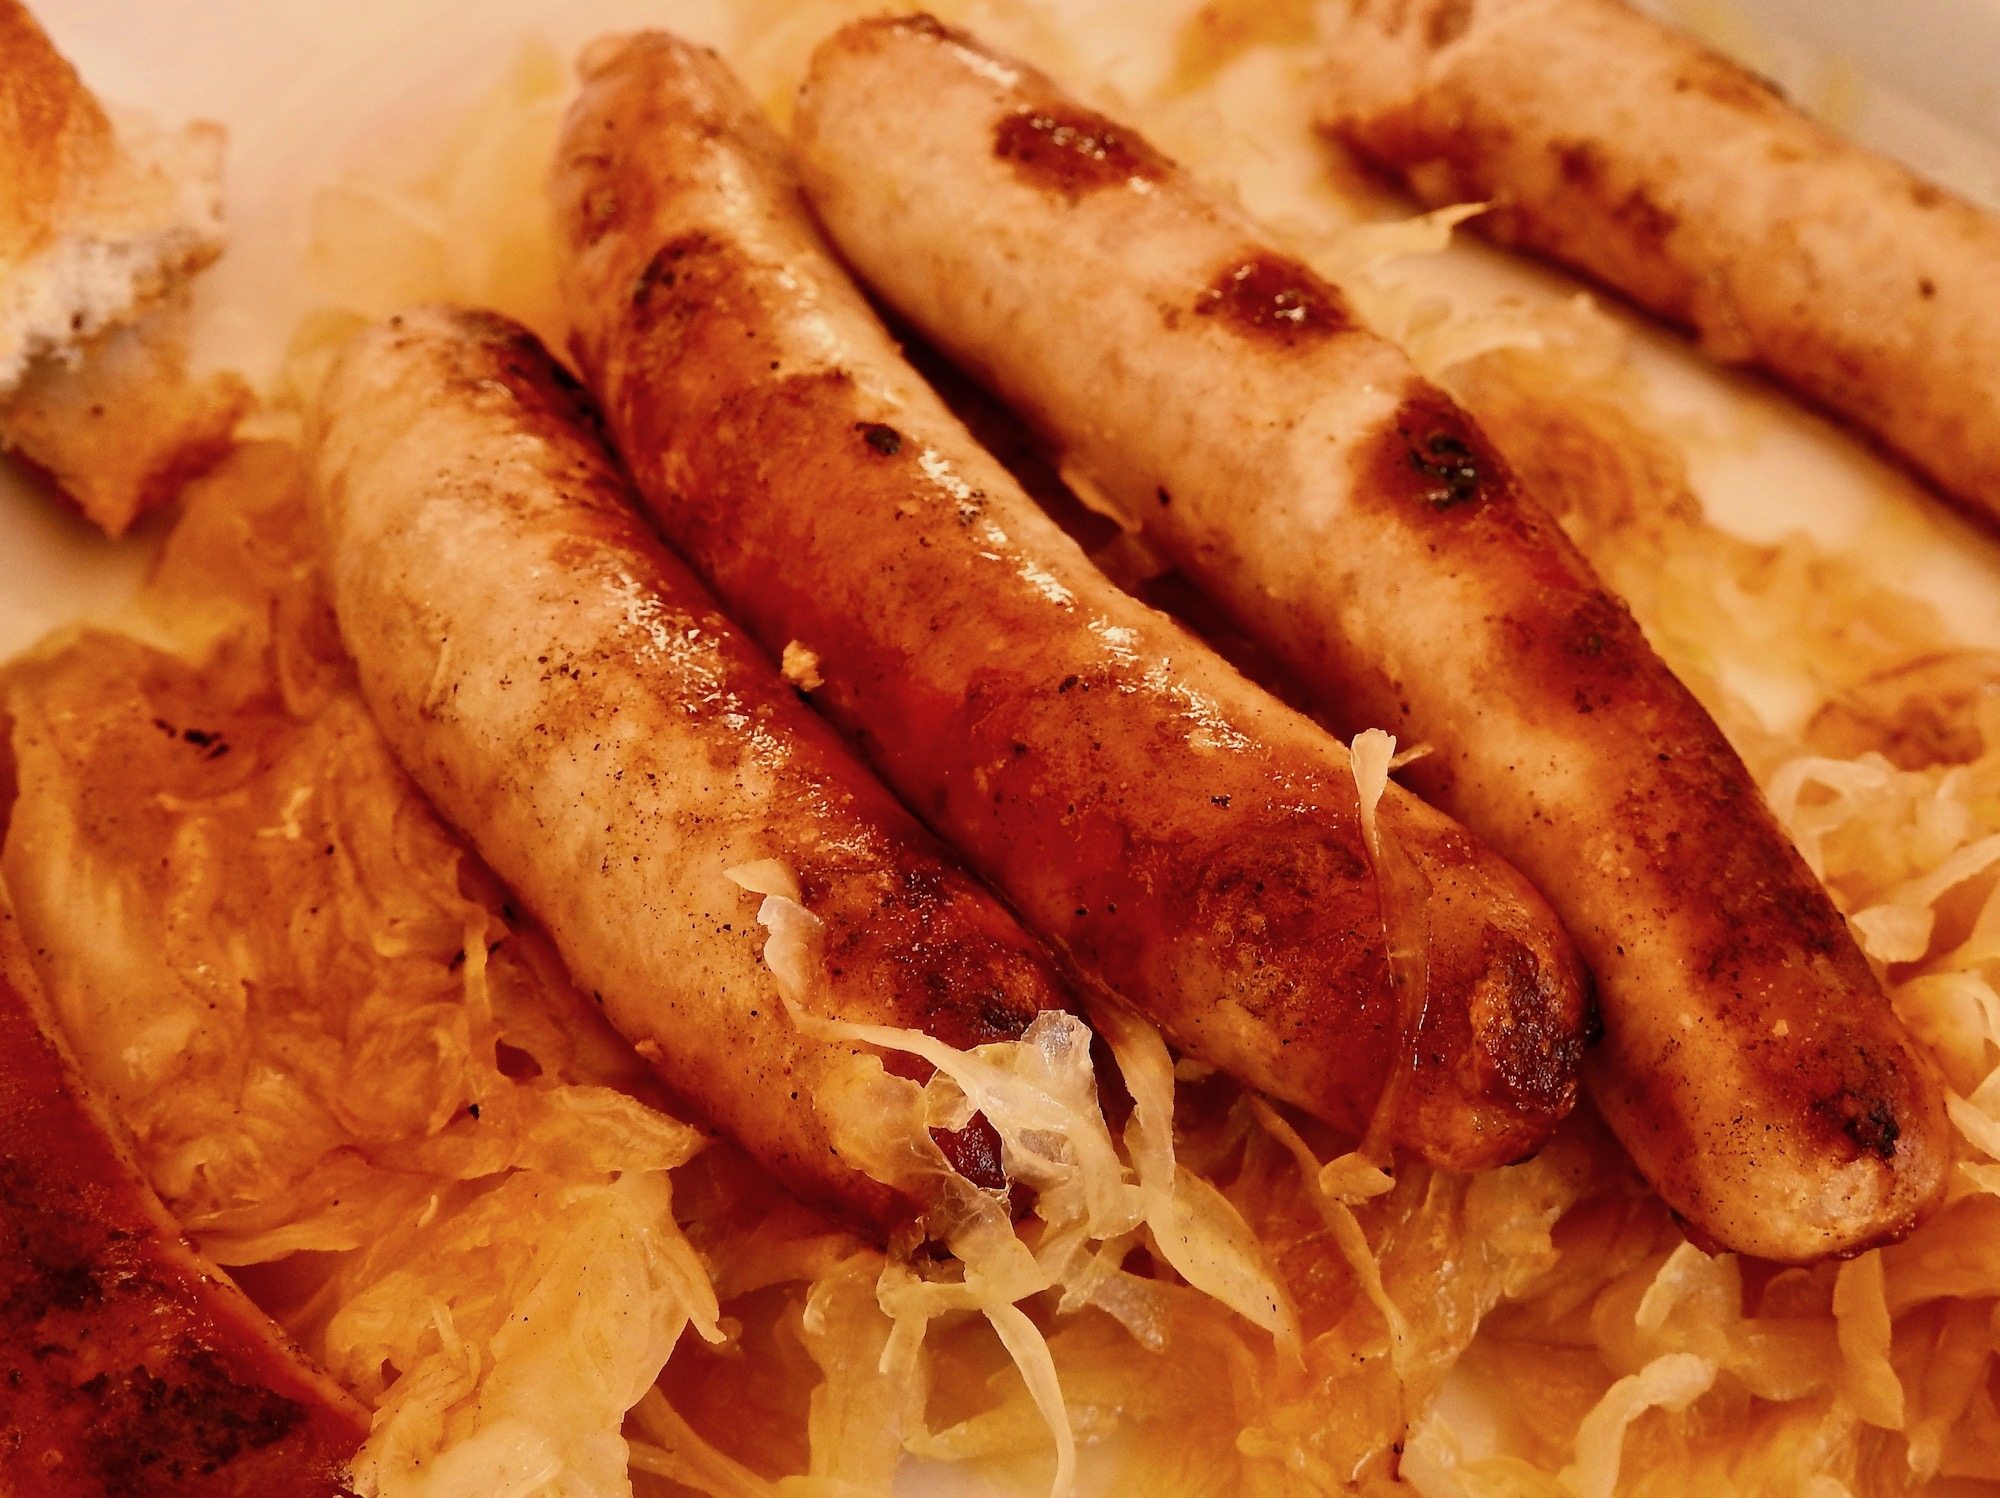 My plate of Sausage from Historische Wurstkuche.